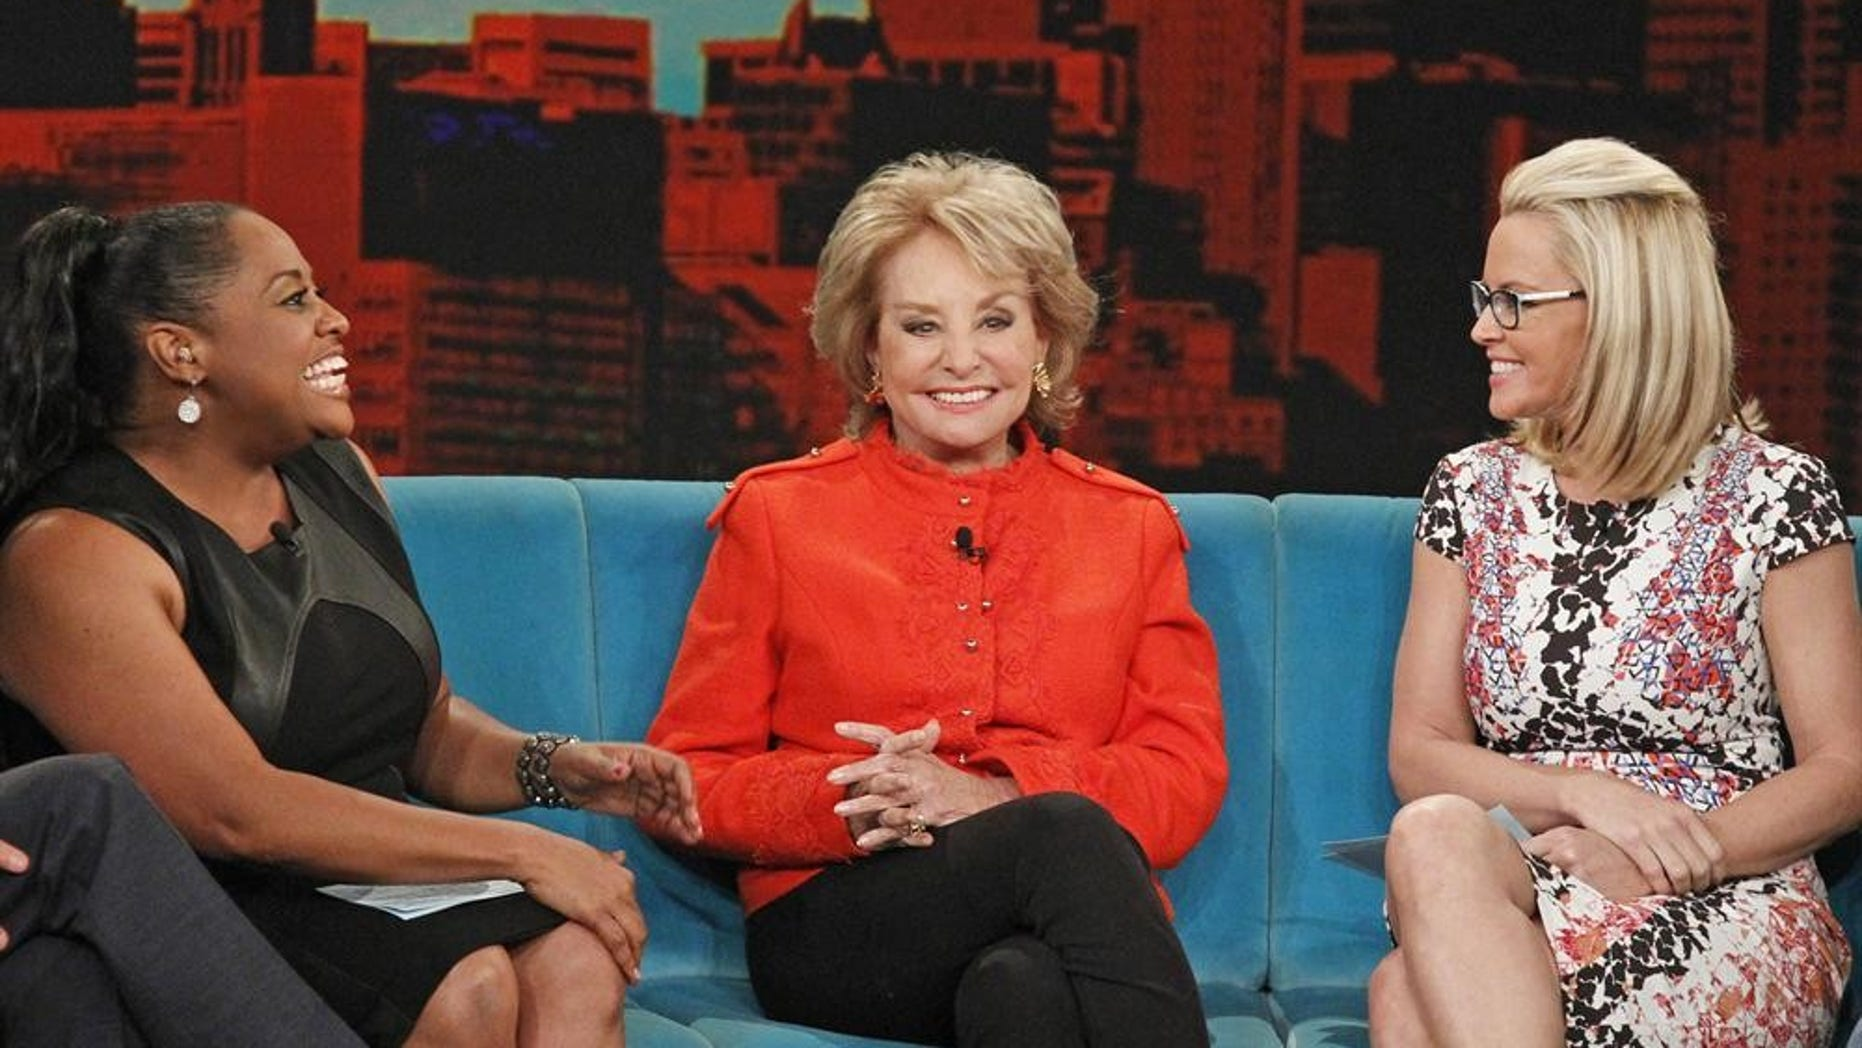 """This June 25, 2014 photo released by ABC shows, from left, Sherri Shepherd, Barbara Walters and Jenny McCarthy on the daytime talk show """"The View,"""" in New York."""